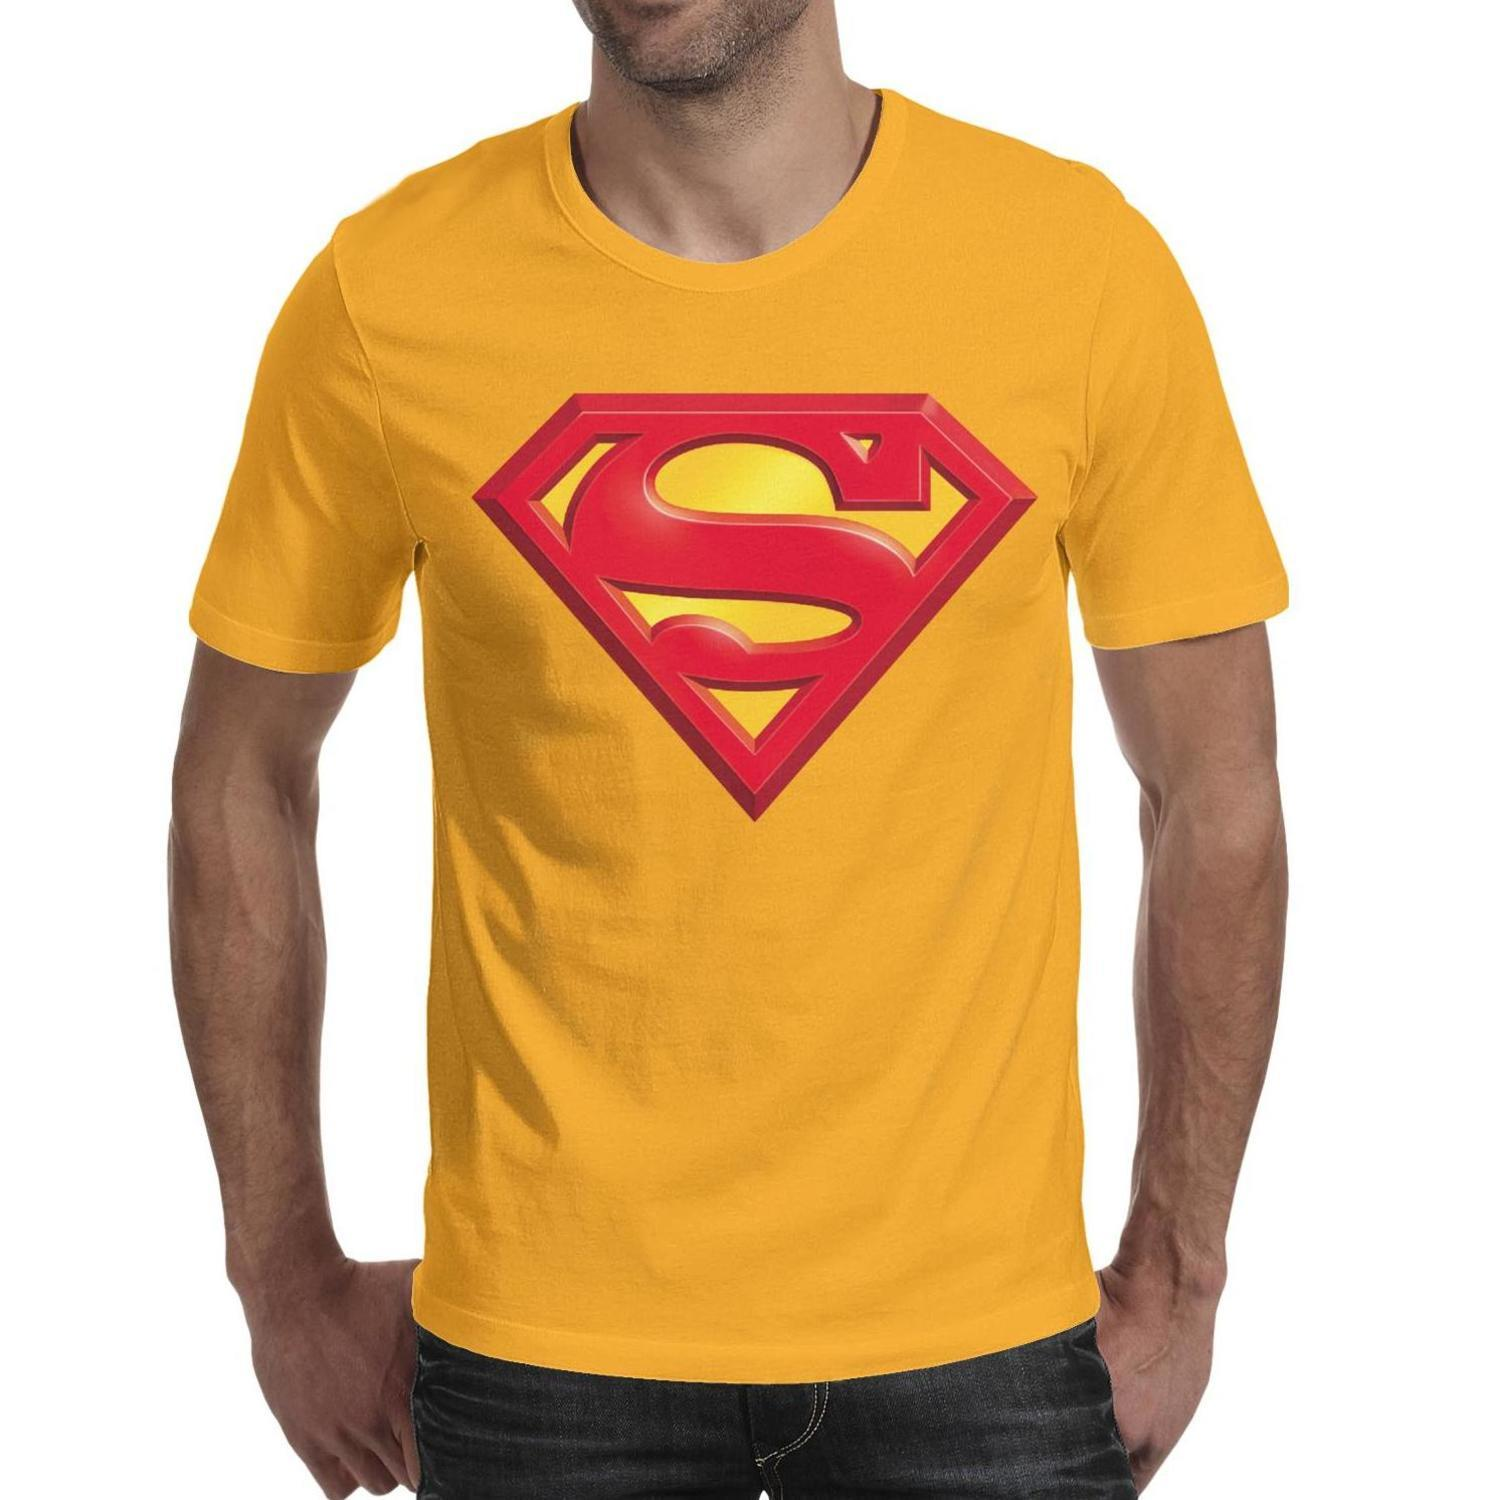 Superman logo yellow and red yellow men's short sleeve t shirt wholesale t shirt 100%cotton sport friends men's Tops Pullover